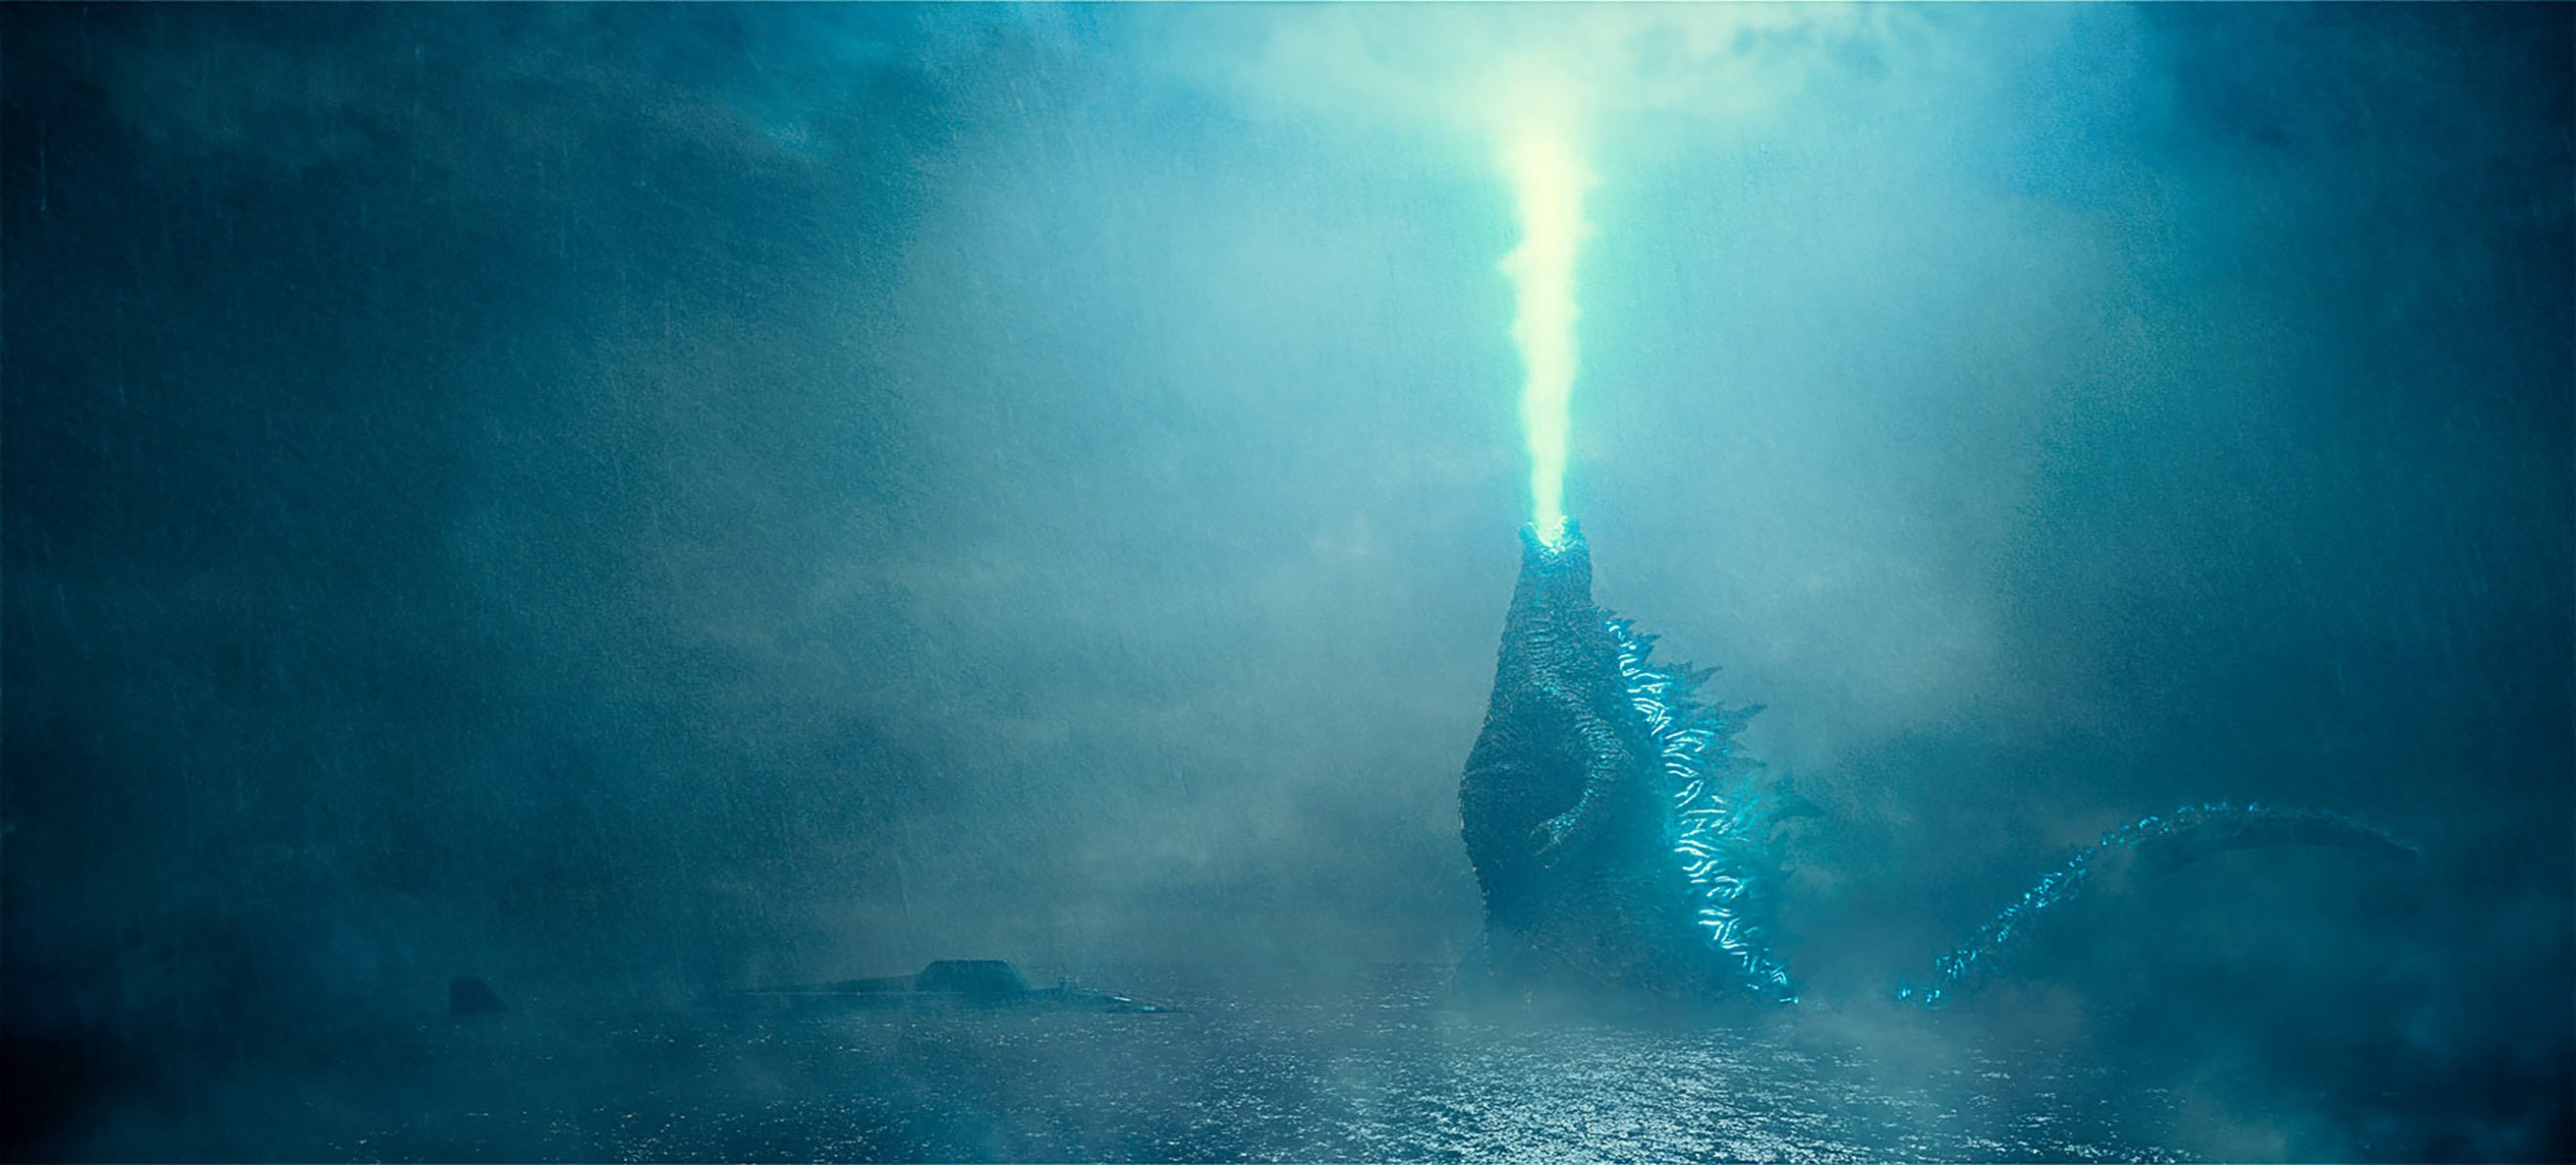 Godzilla King Of The Monsters Featured Image